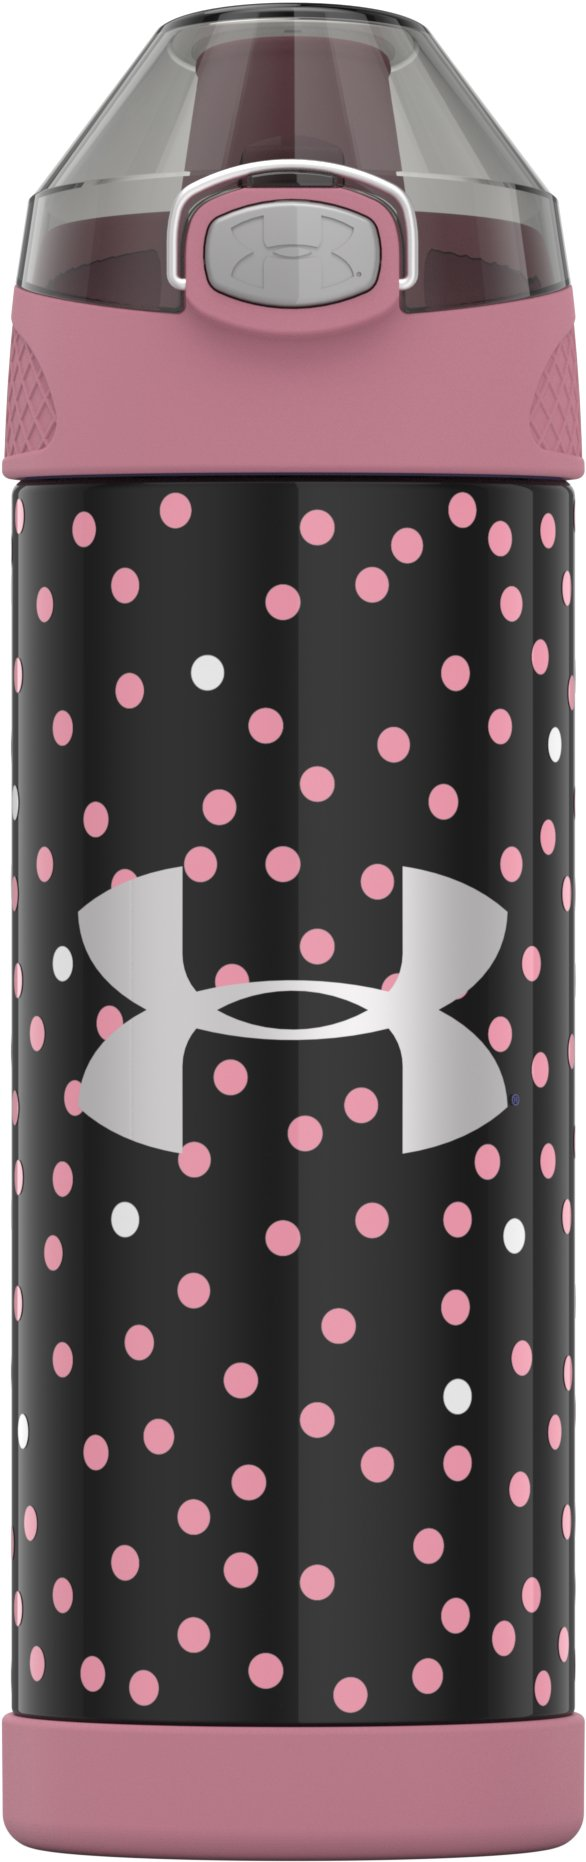 Beyond 16 oz. Vacuum Insulated Stainless Steel Water Bottle, Pink